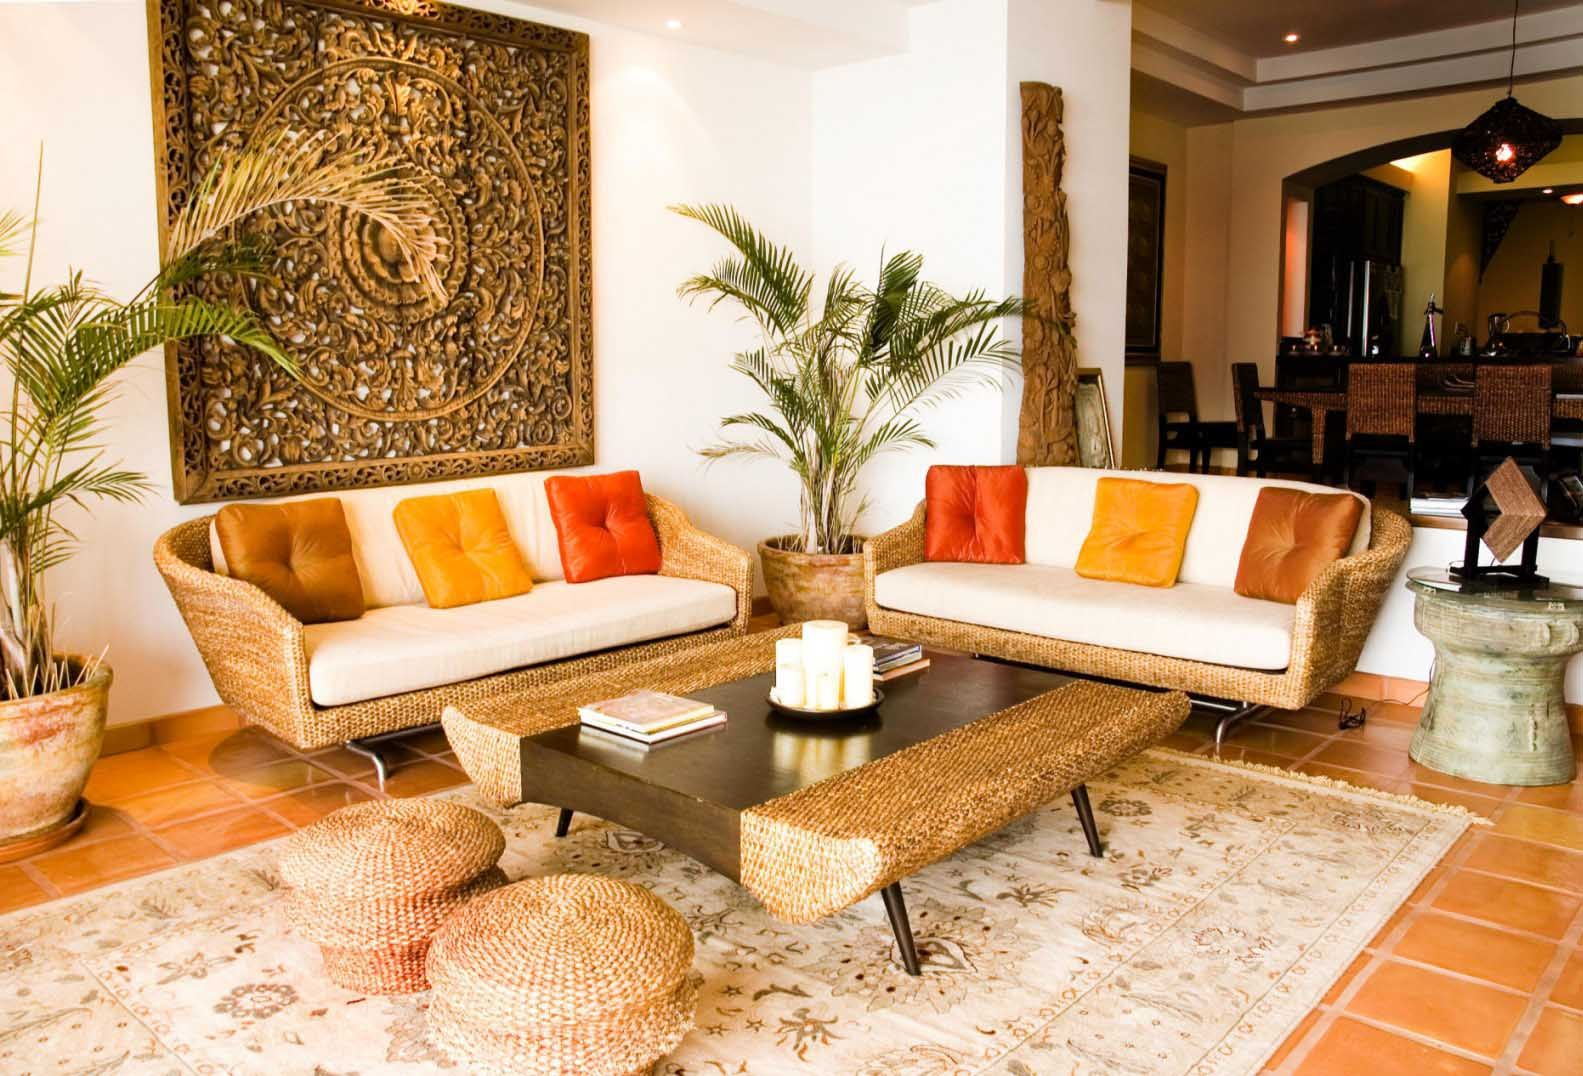 14 Amazing Living Room Designs Indian Style Interior And Decorating Ideas Archlux Net Tropical Living Room Indian Living Rooms Indian Interior Design #tropical #living #room #design